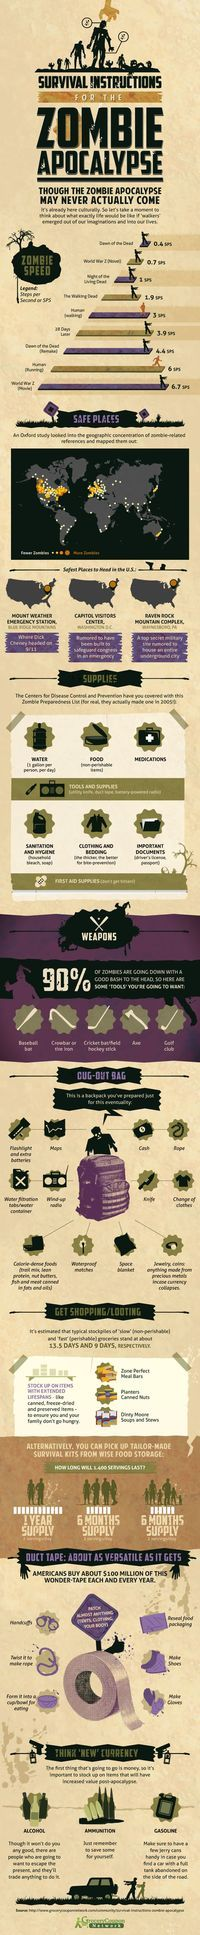 More zombie survival tips! Be ready for that next flesh-eating outbreak with this handy guide. #zombies #infographic #survival: